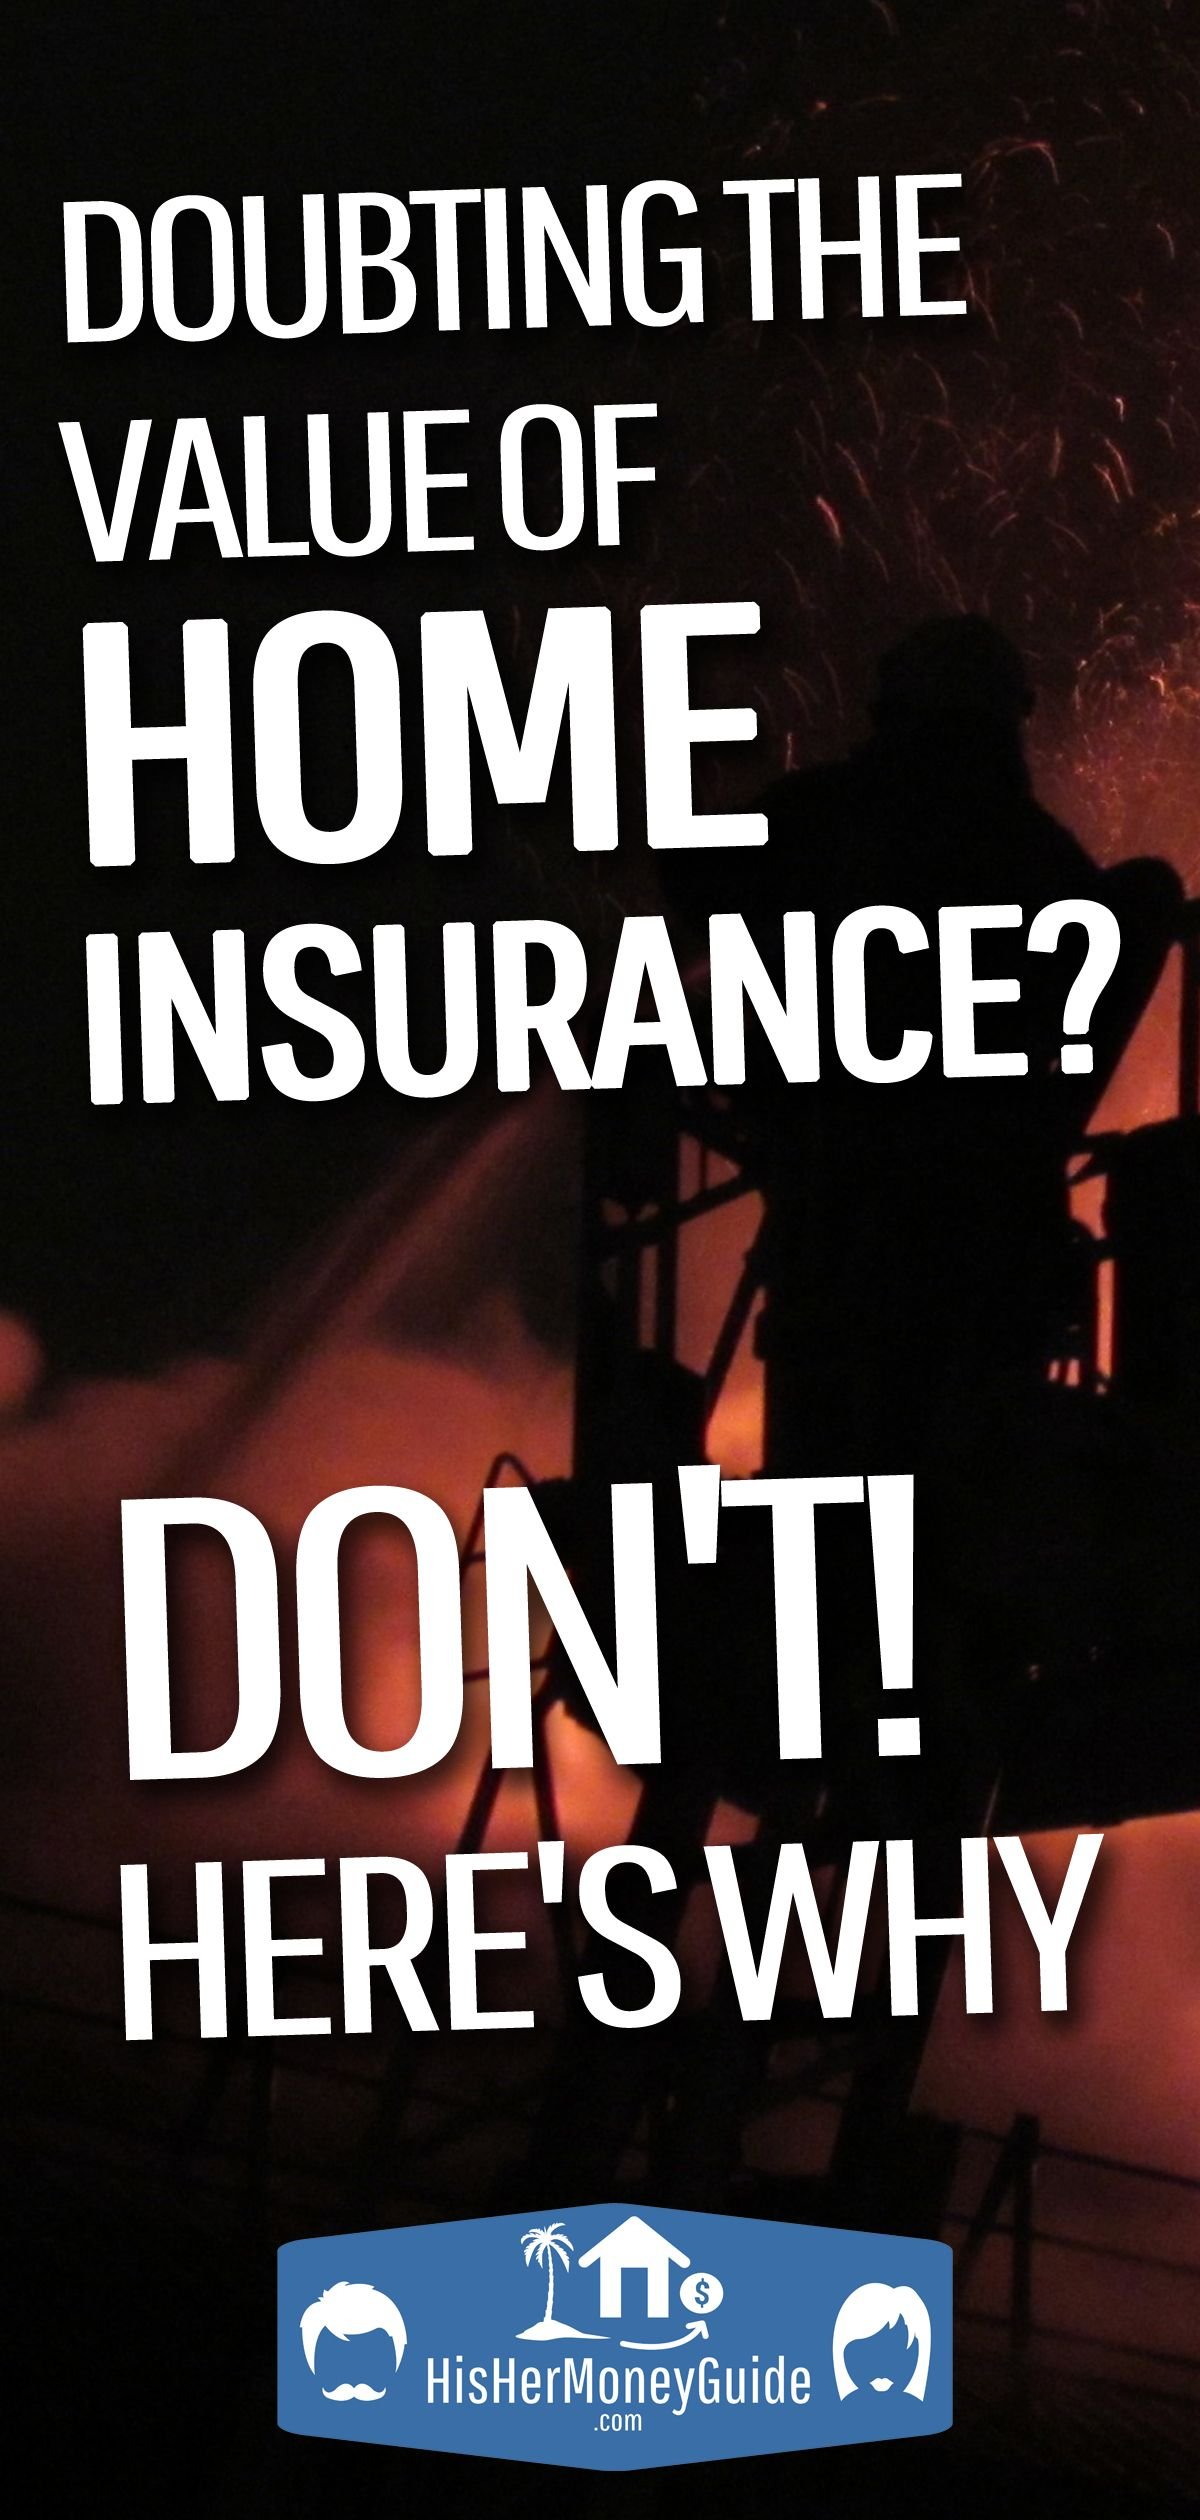 Doubting home insurance how we got lucky two days after